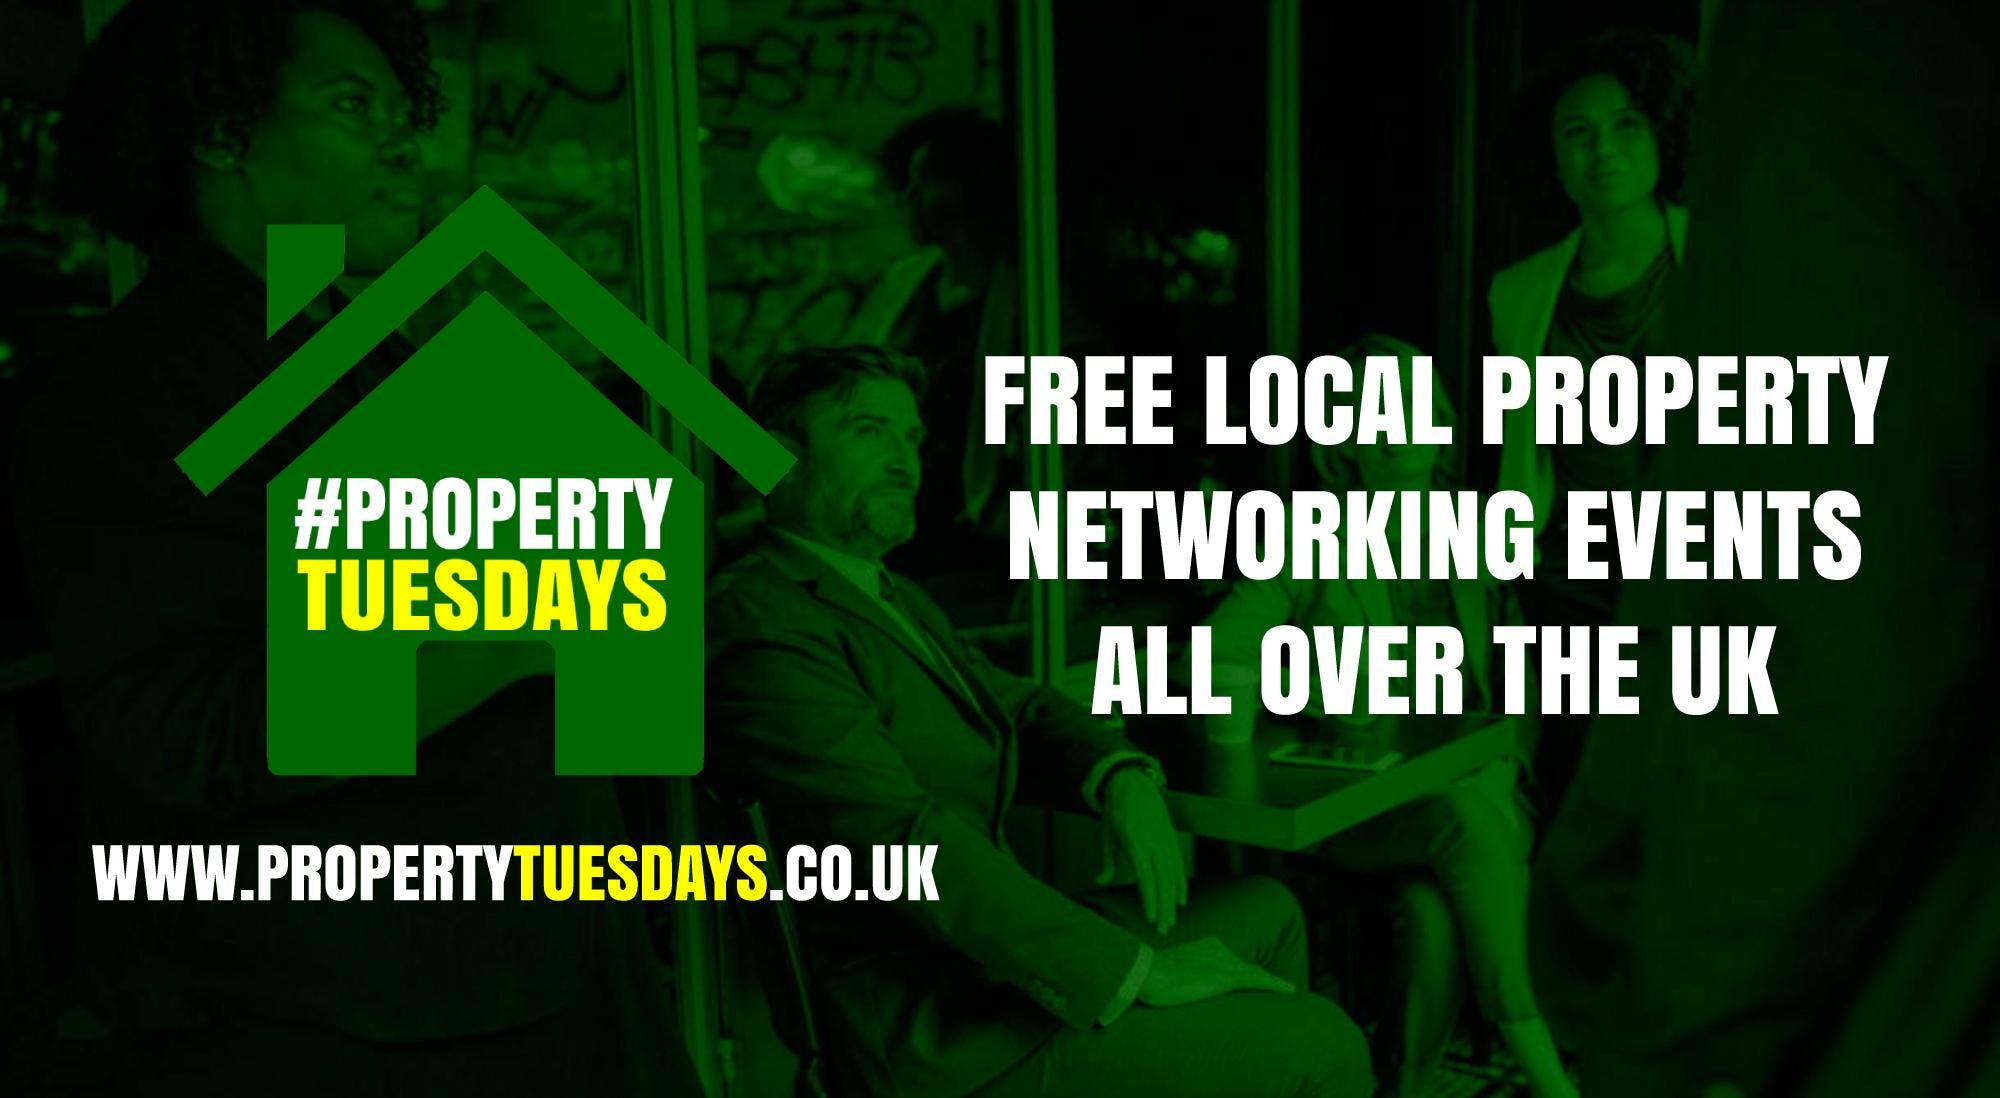 Property Tuesdays! Free property networking event in South Shields